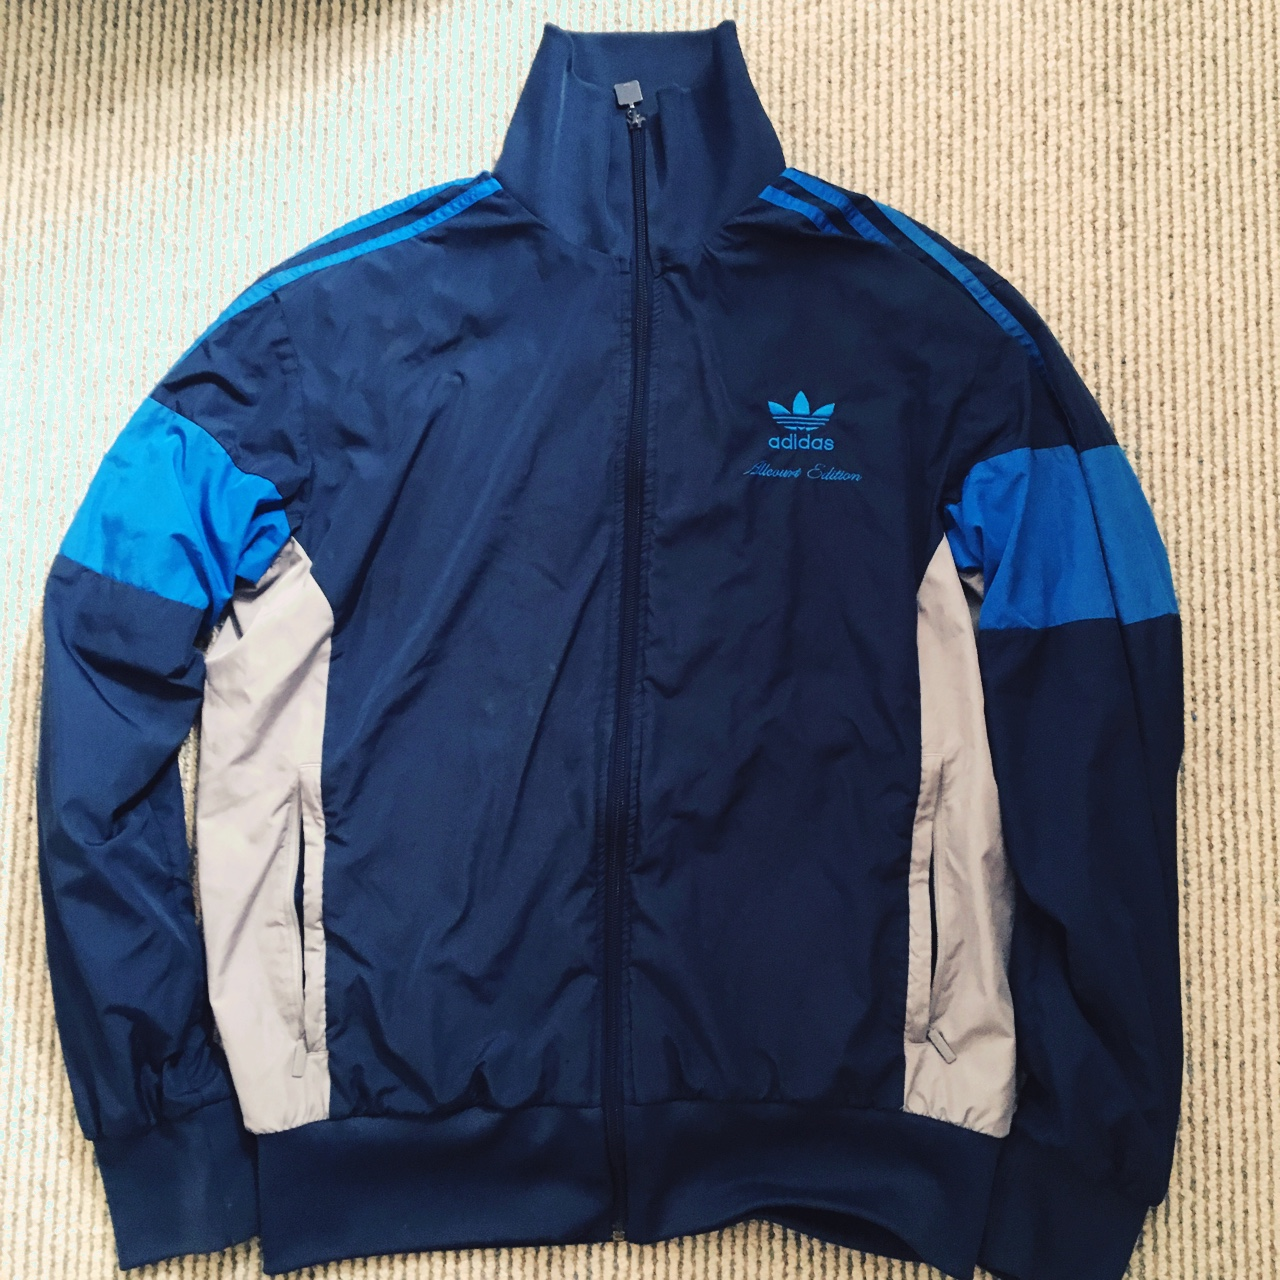 adidas all court jacket